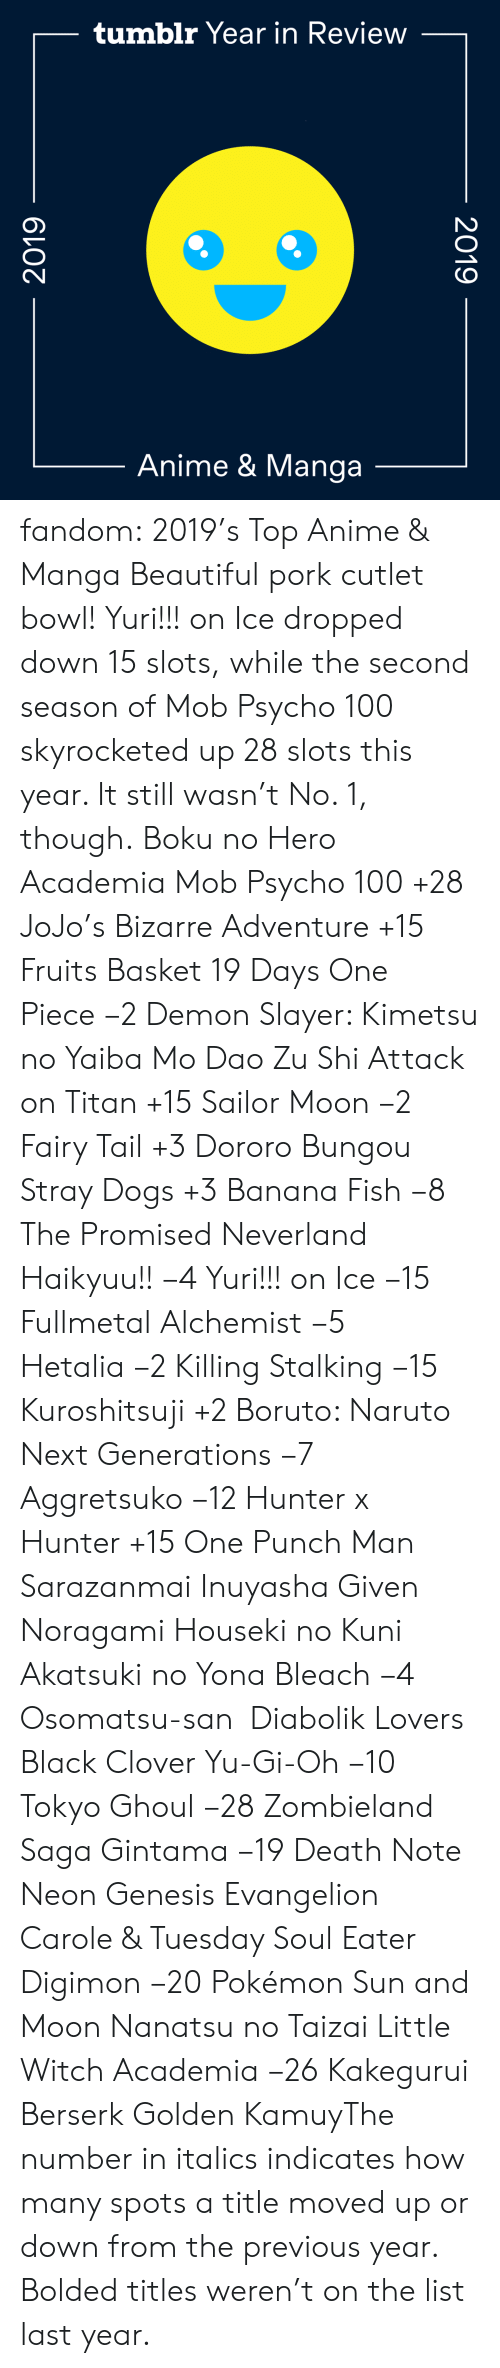 hunter x hunter: tumblr Year in Review  Anime & Manga  2019  2019 fandom:  2019's Top Anime & Manga  Beautiful pork cutlet bowl! Yuri!!! on Ice dropped down 15 slots, while the second season of Mob Psycho 100 skyrocketed up 28 slots this year. It still wasn't No. 1, though.  Boku no Hero Academia  Mob Psycho 100 +28  JoJo's Bizarre Adventure +15  Fruits Basket  19 Days  One Piece −2  Demon Slayer: Kimetsu no Yaiba  Mo Dao Zu Shi  Attack on Titan +15  Sailor Moon −2  Fairy Tail +3  Dororo  Bungou Stray Dogs +3  Banana Fish −8  The Promised Neverland  Haikyuu!! −4  Yuri!!! on Ice −15  Fullmetal Alchemist −5  Hetalia −2  Killing Stalking −15  Kuroshitsuji +2  Boruto: Naruto Next Generations −7  Aggretsuko −12  Hunter x Hunter +15  One Punch Man  Sarazanmai  Inuyasha  Given  Noragami  Houseki no Kuni  Akatsuki no Yona  Bleach −4  Osomatsu-san   Diabolik Lovers  Black Clover  Yu-Gi-Oh −10  Tokyo Ghoul −28  Zombieland Saga  Gintama −19  Death Note  Neon Genesis Evangelion  Carole & Tuesday  Soul Eater  Digimon −20  Pokémon Sun and Moon  Nanatsu no Taizai  Little Witch Academia −26  Kakegurui  Berserk Golden KamuyThe number in italics indicates how many spots a title moved up or down from the previous year. Bolded titles weren't on the list last year.